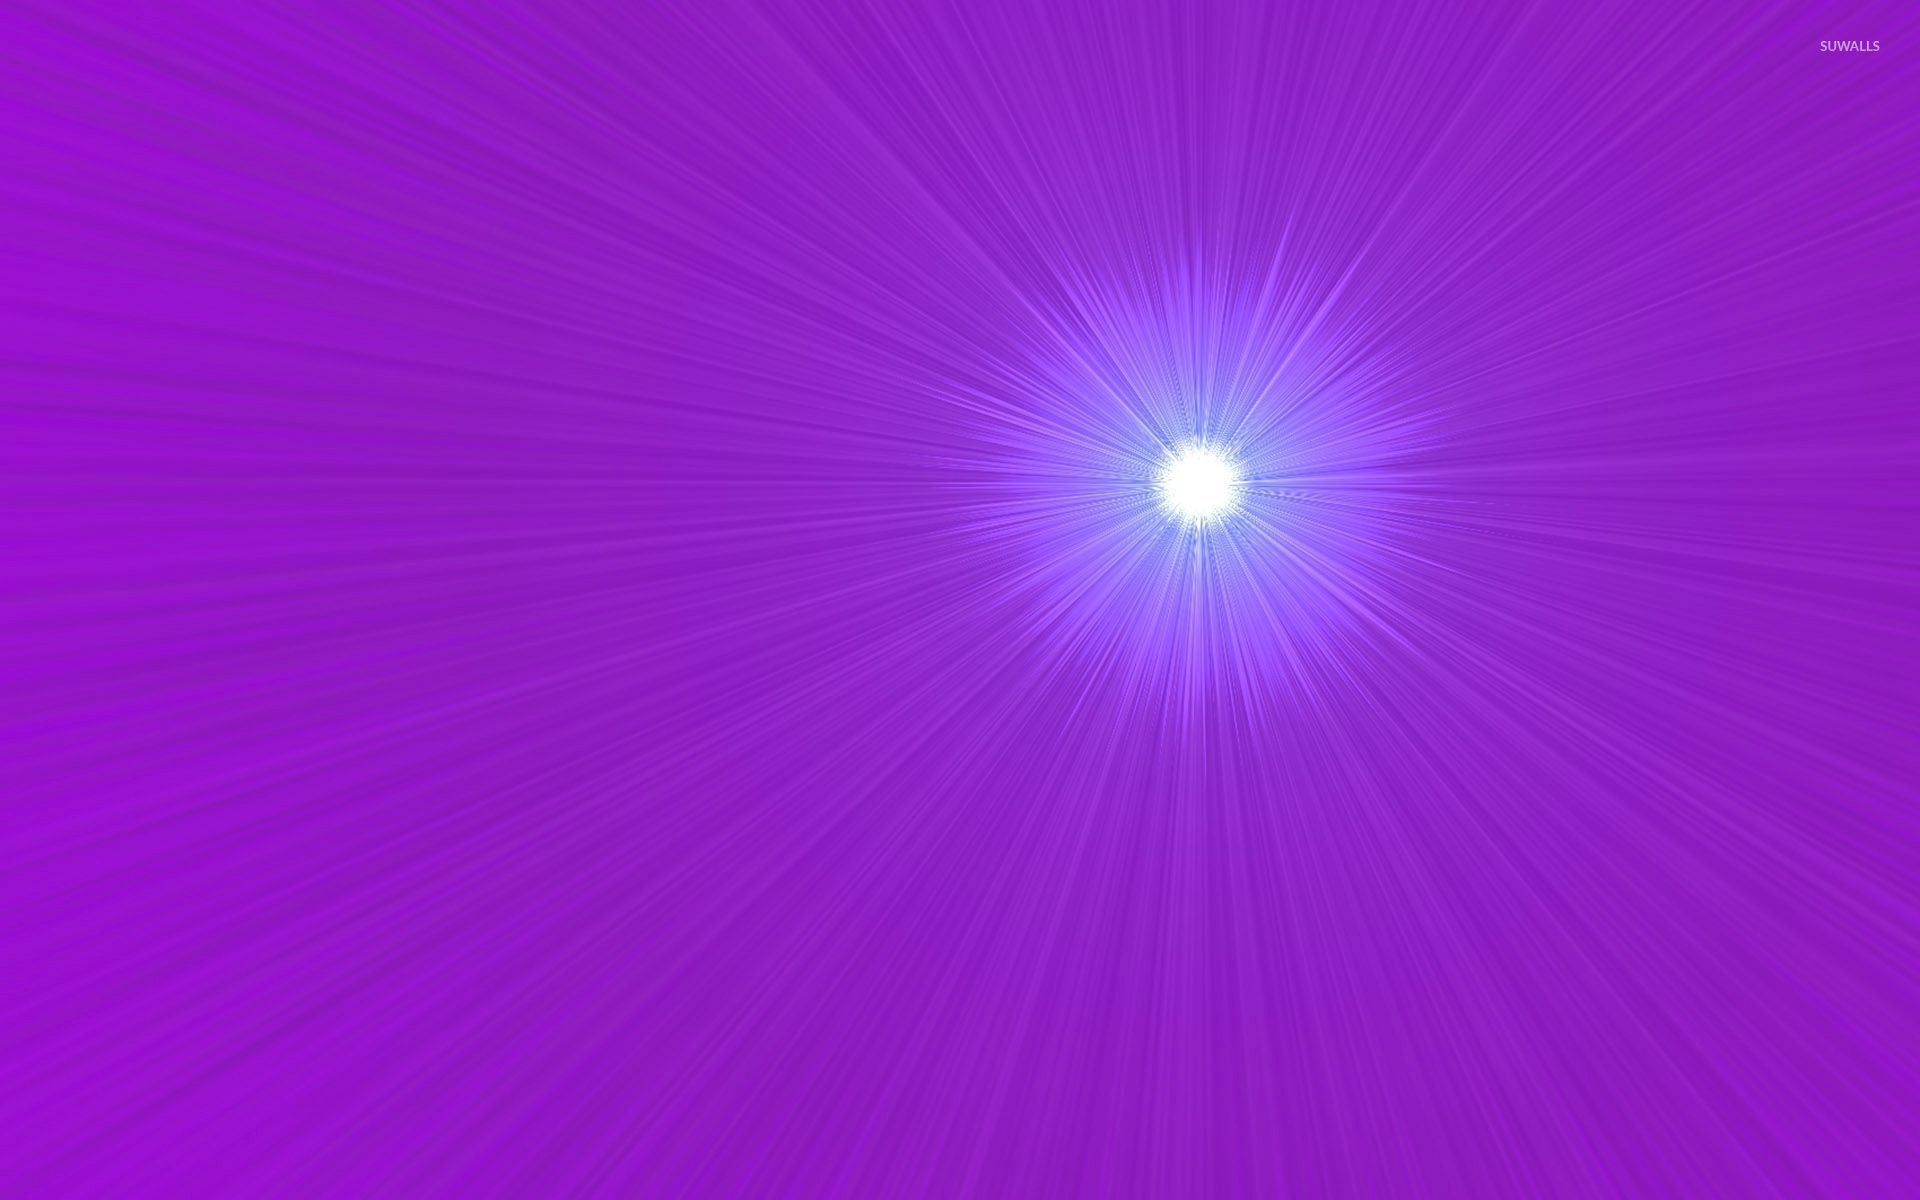 Bright Light On The Purple Wall Wallpaper Abstract